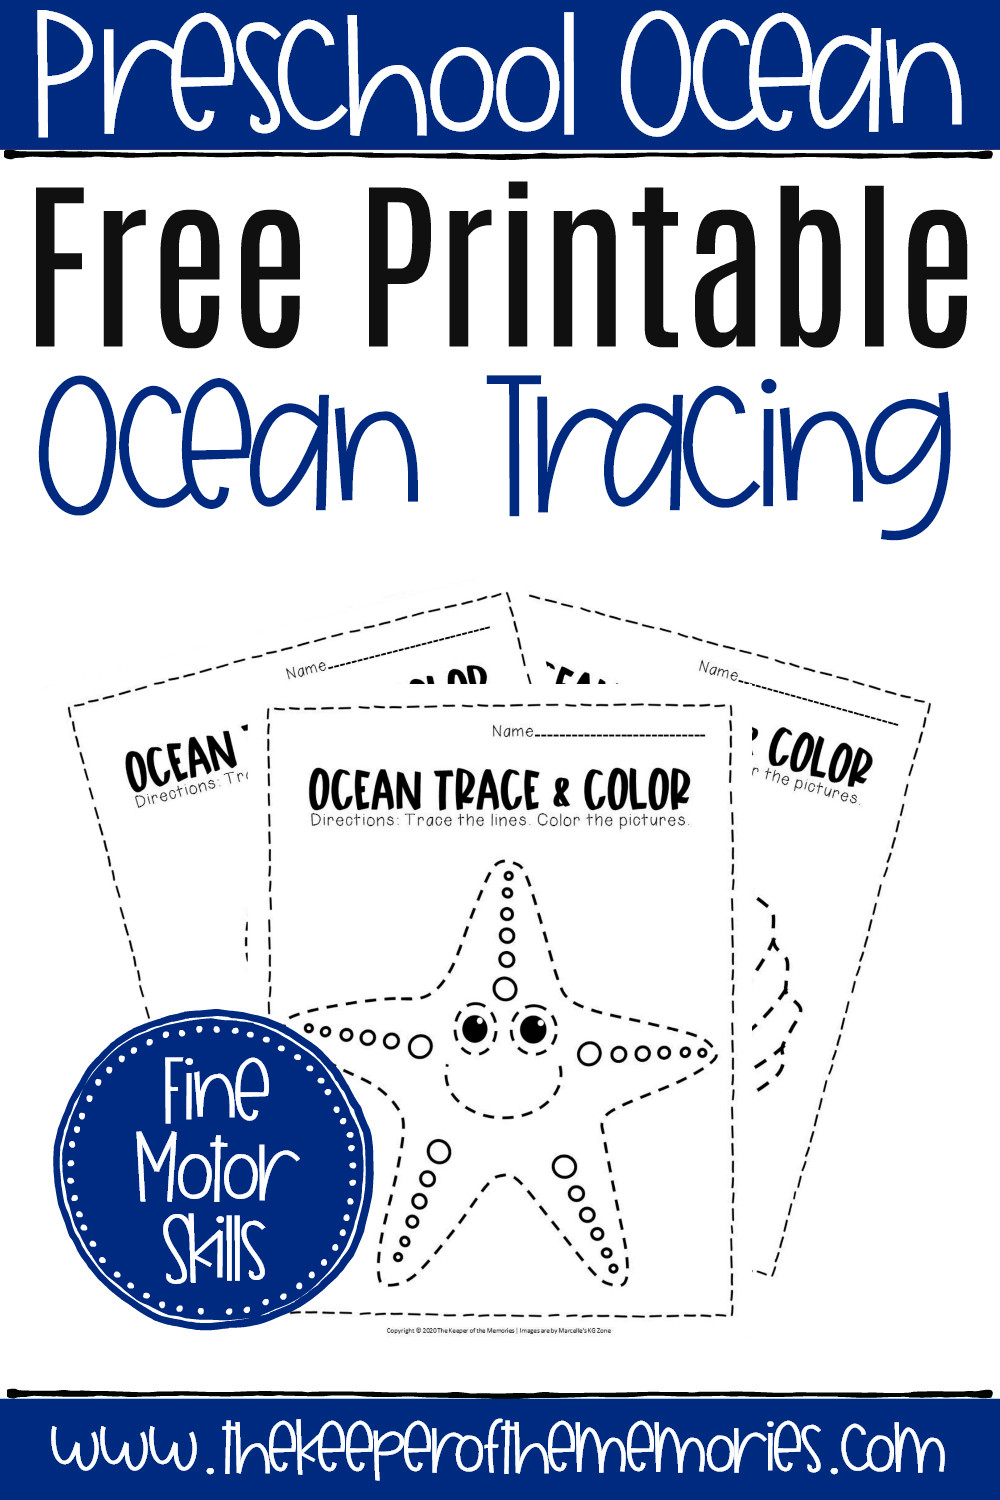 Ocean Worksheets for Preschool Free Printable Ocean Tracing Worksheets the Keeper Of the